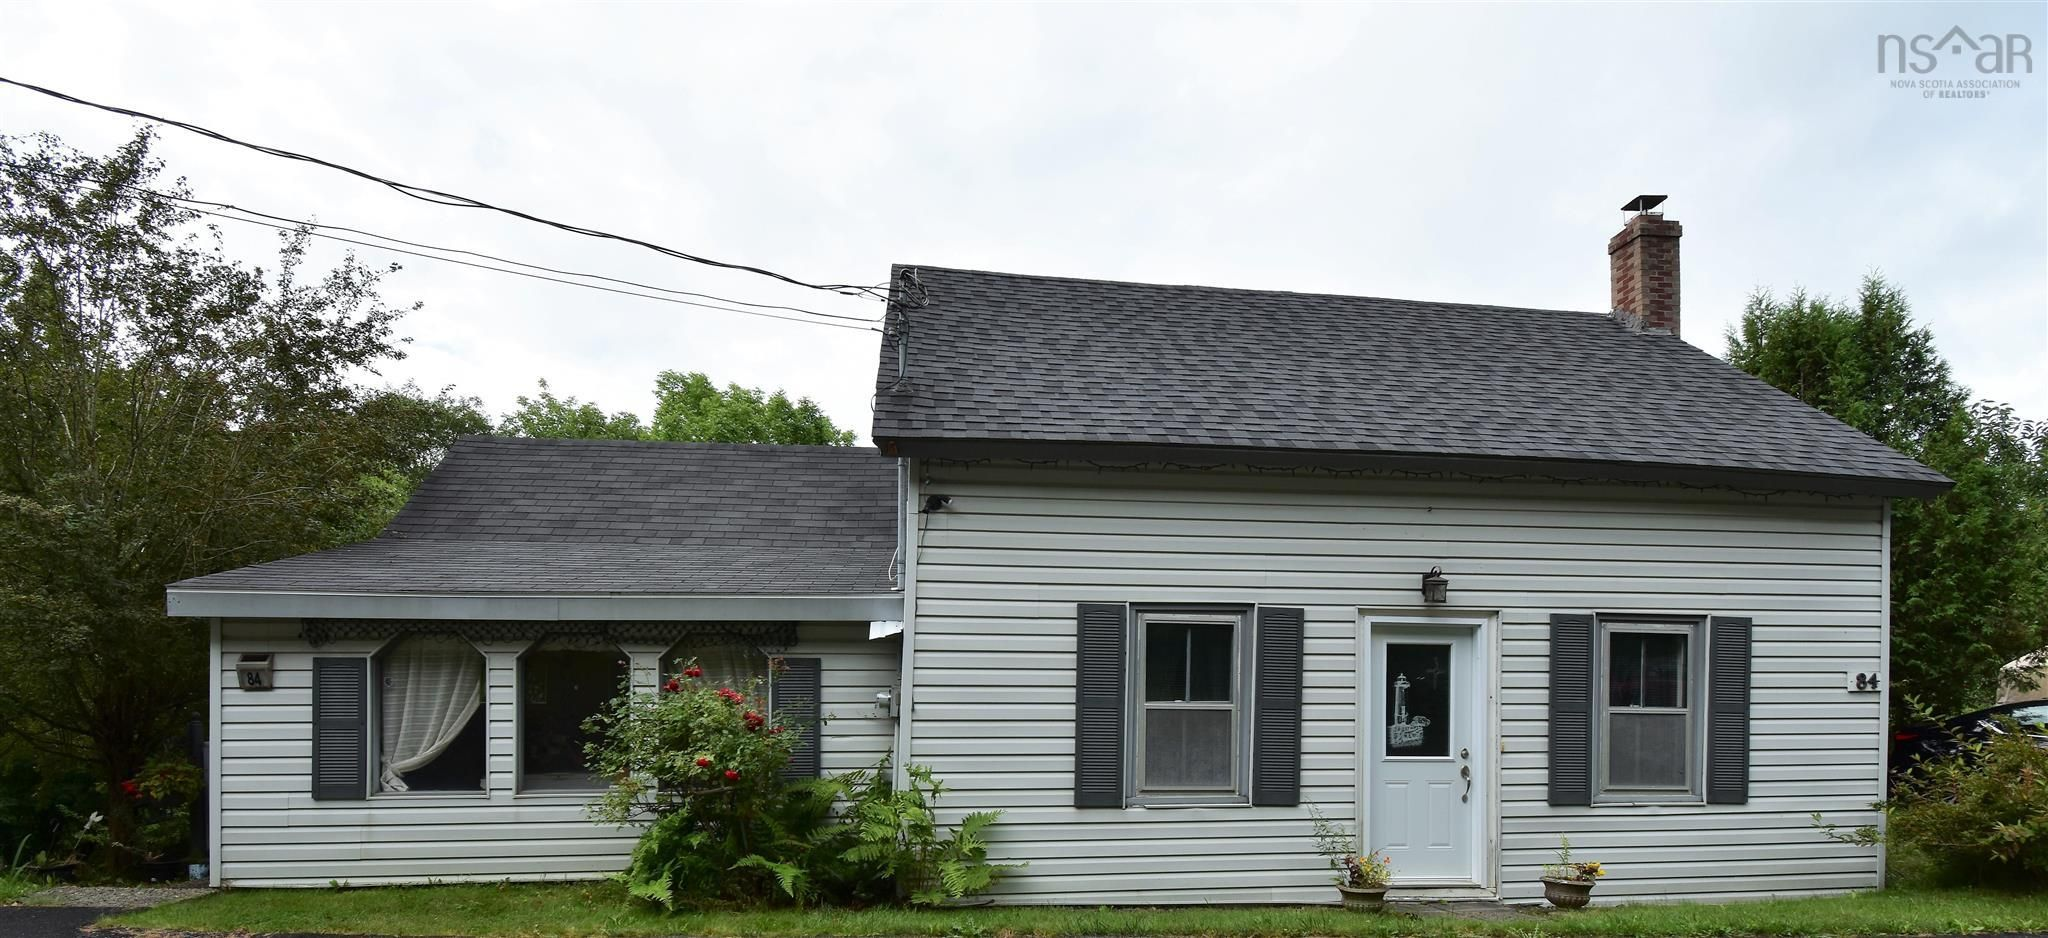 Main Photo: 84 UPPER RIVER Street in Bear River: 400-Annapolis County Residential for sale (Annapolis Valley)  : MLS®# 202121921